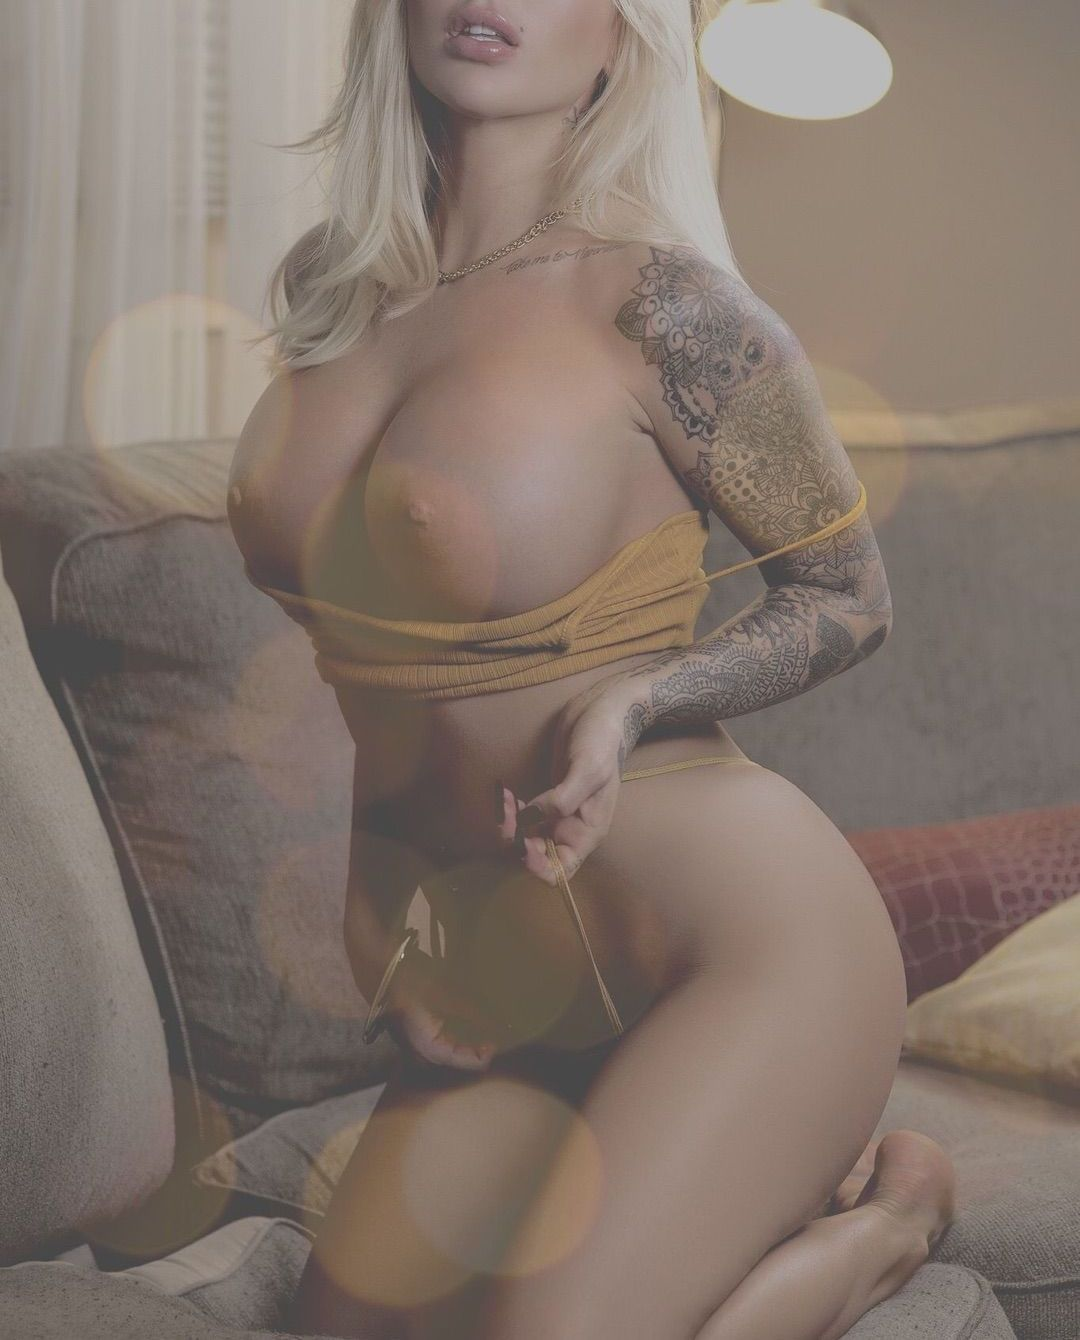 Jessica Weaver Jessicakes33 Onlyfans Nudes Leaks 0006